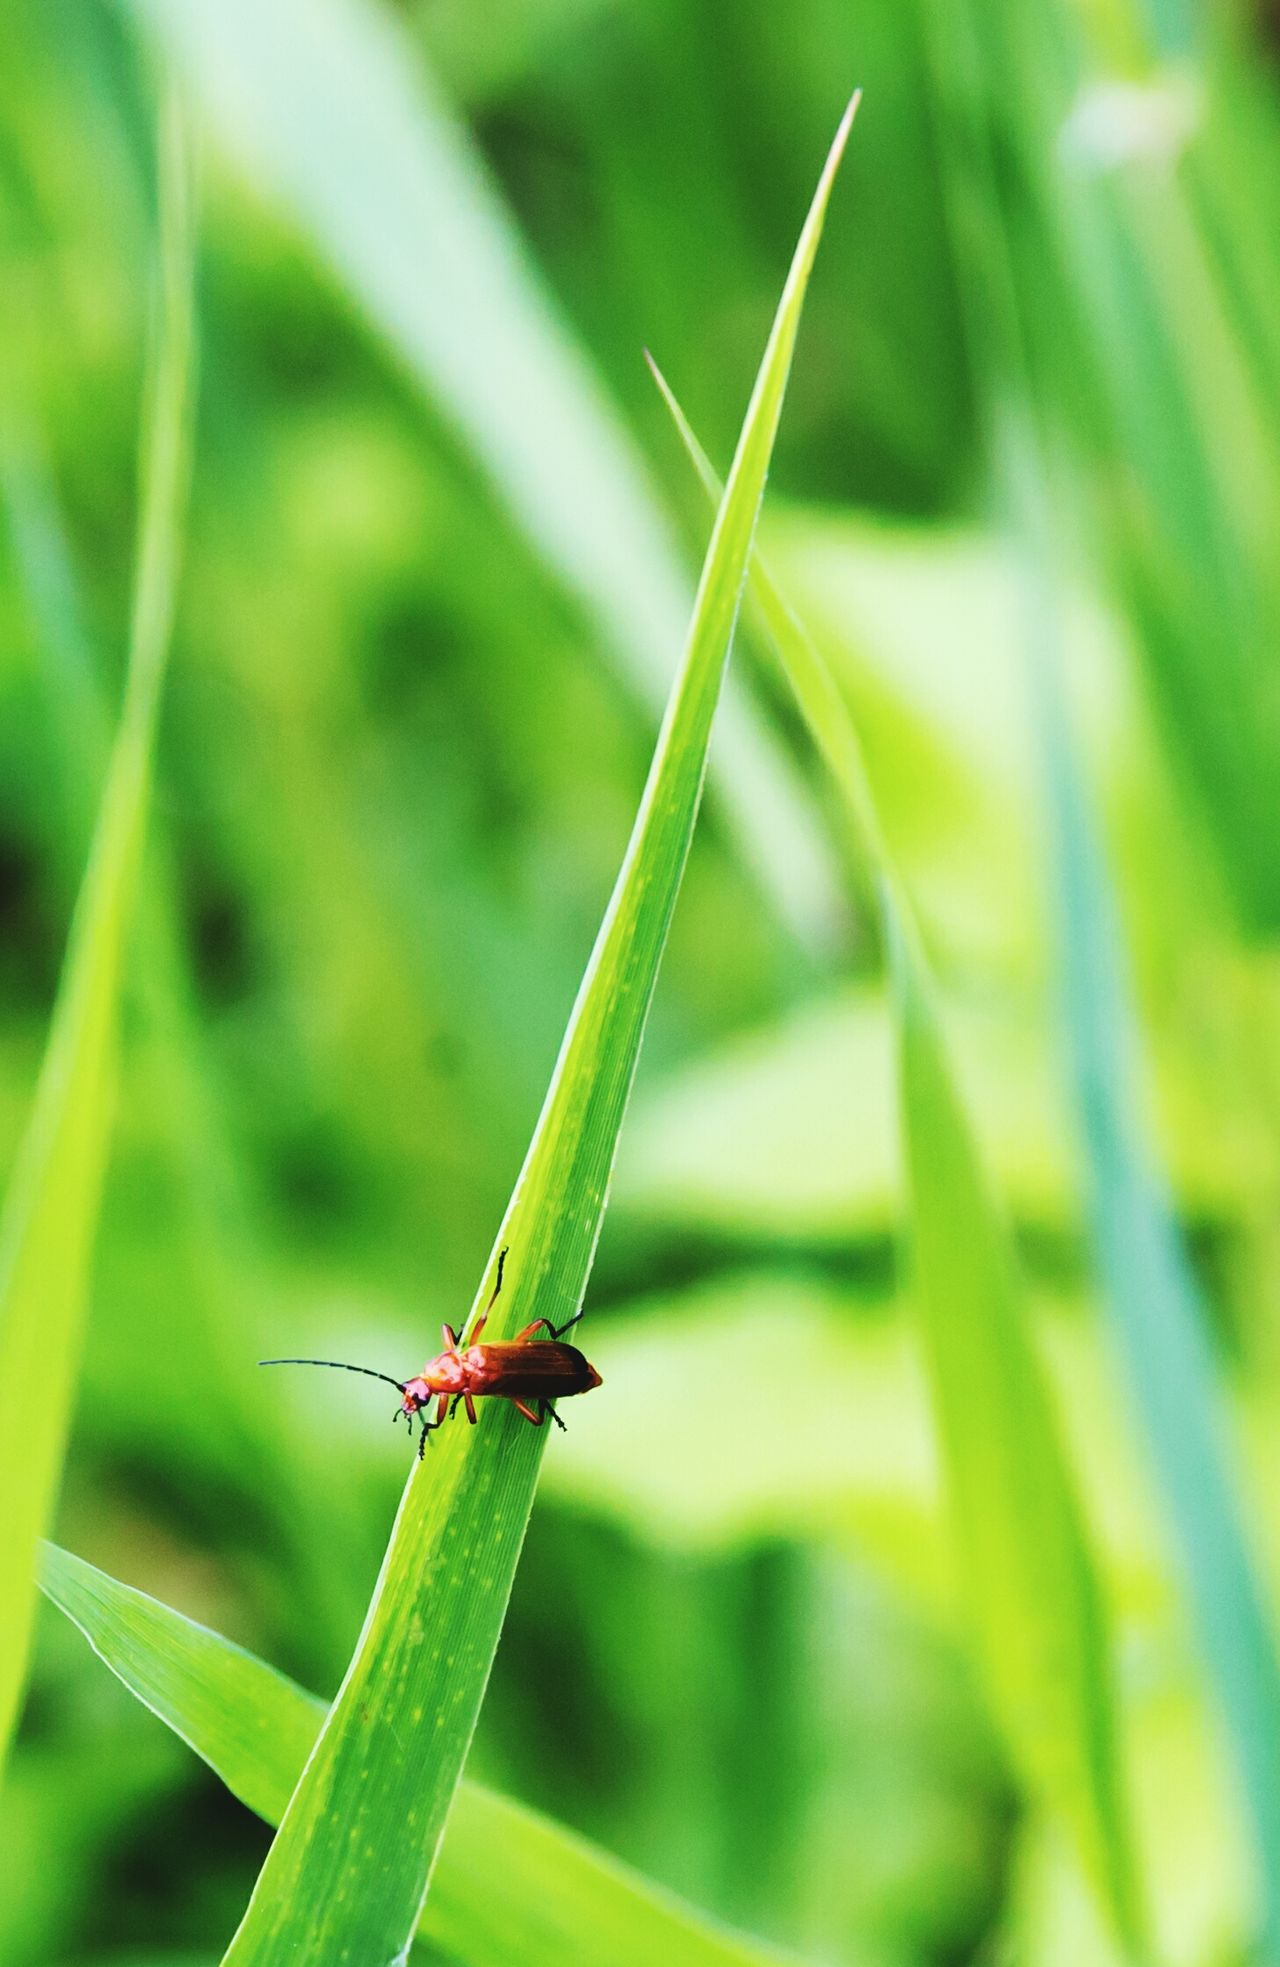 Insect Green Color One Animal Animals In The Wild Animal Wildlife Animal Themes Close-up Outdoors Nature Day Focus On Foreground No People Leaf Damselfly Plant